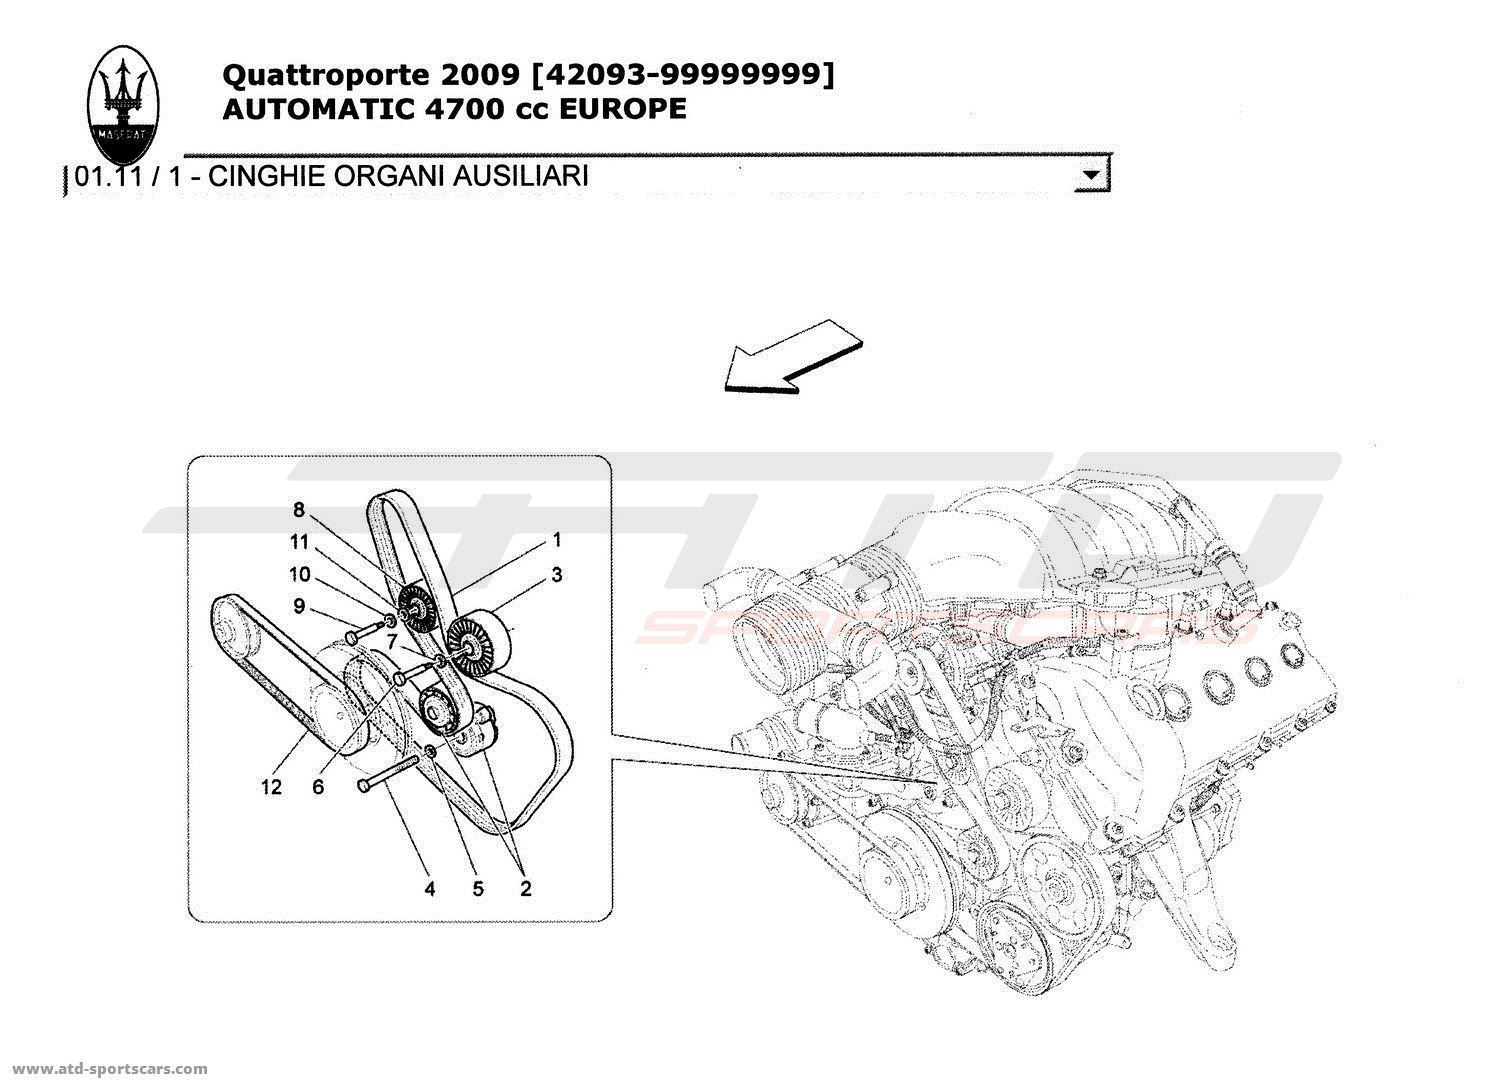 Maserati Quattroporte 47l Boite Auto 2009 Engine Parts At Atd 4 7l Diagram Valve Auxiliary Device Belts